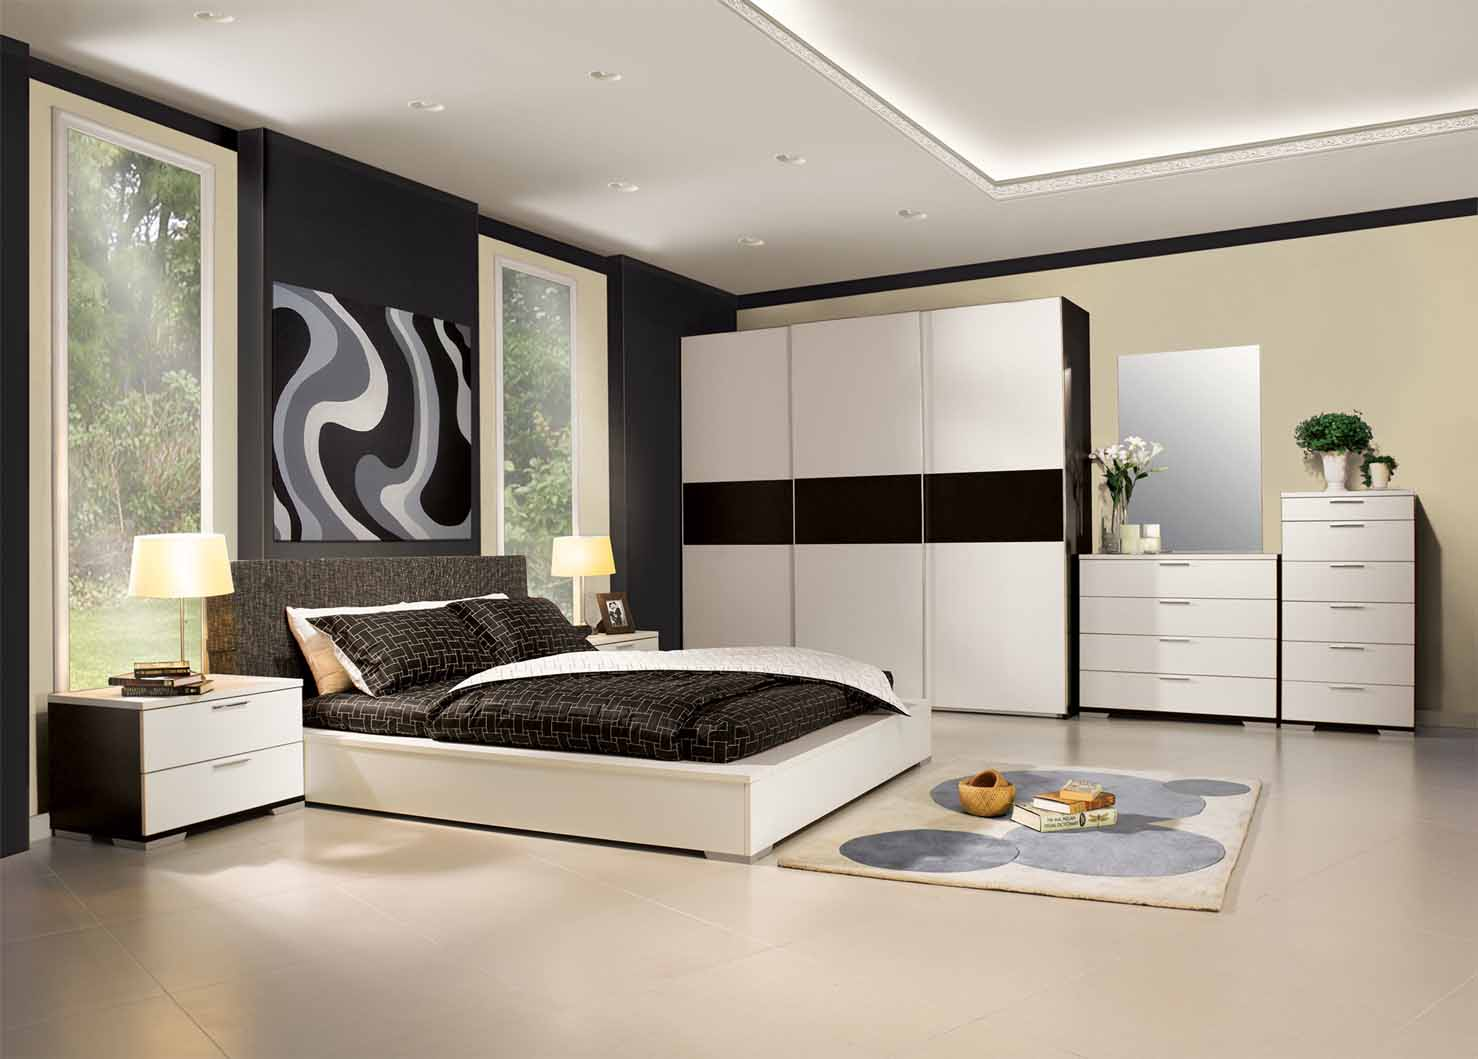 Modern bedroom design fouadtalal for New bedroom designs pictures